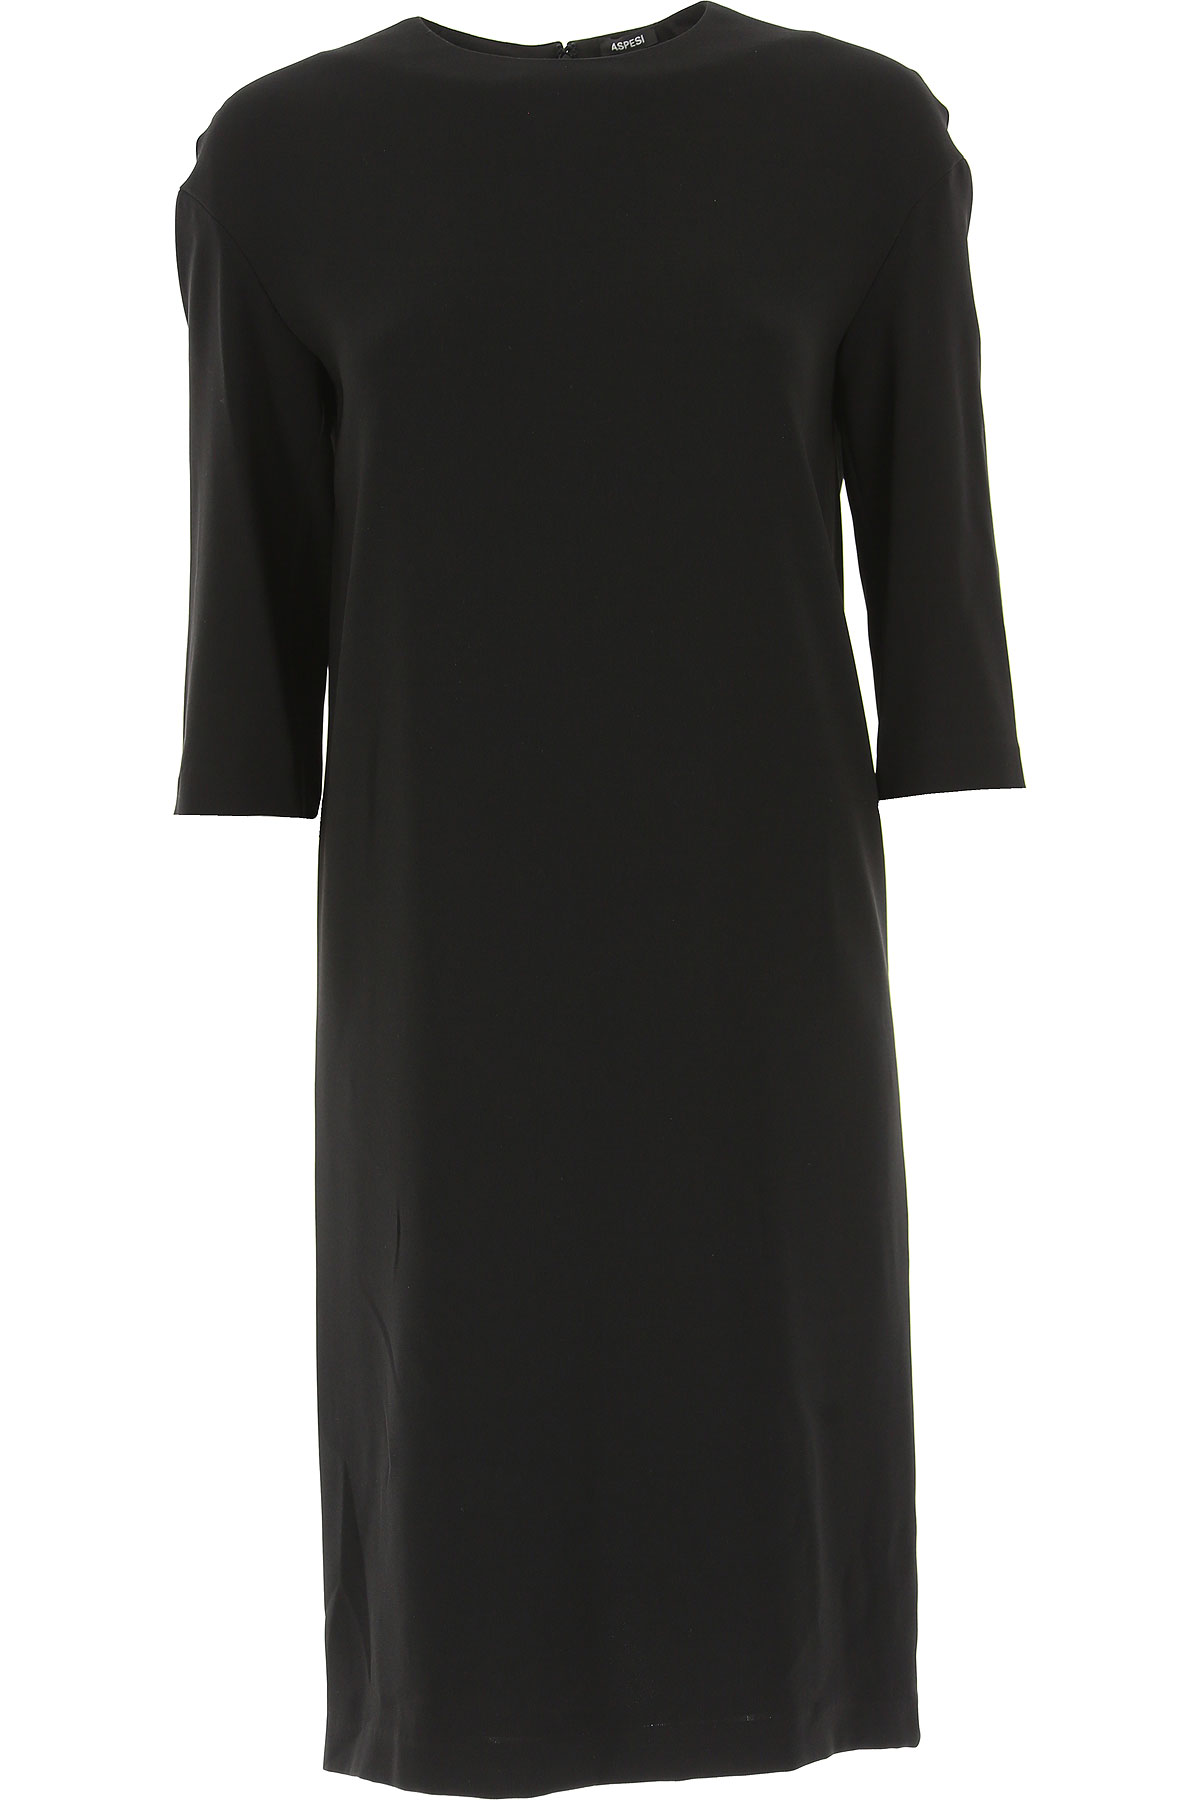 Image of Aspesi Dress for Women, Evening Cocktail Party, Black, Triacetate, 2017, 4 6 8